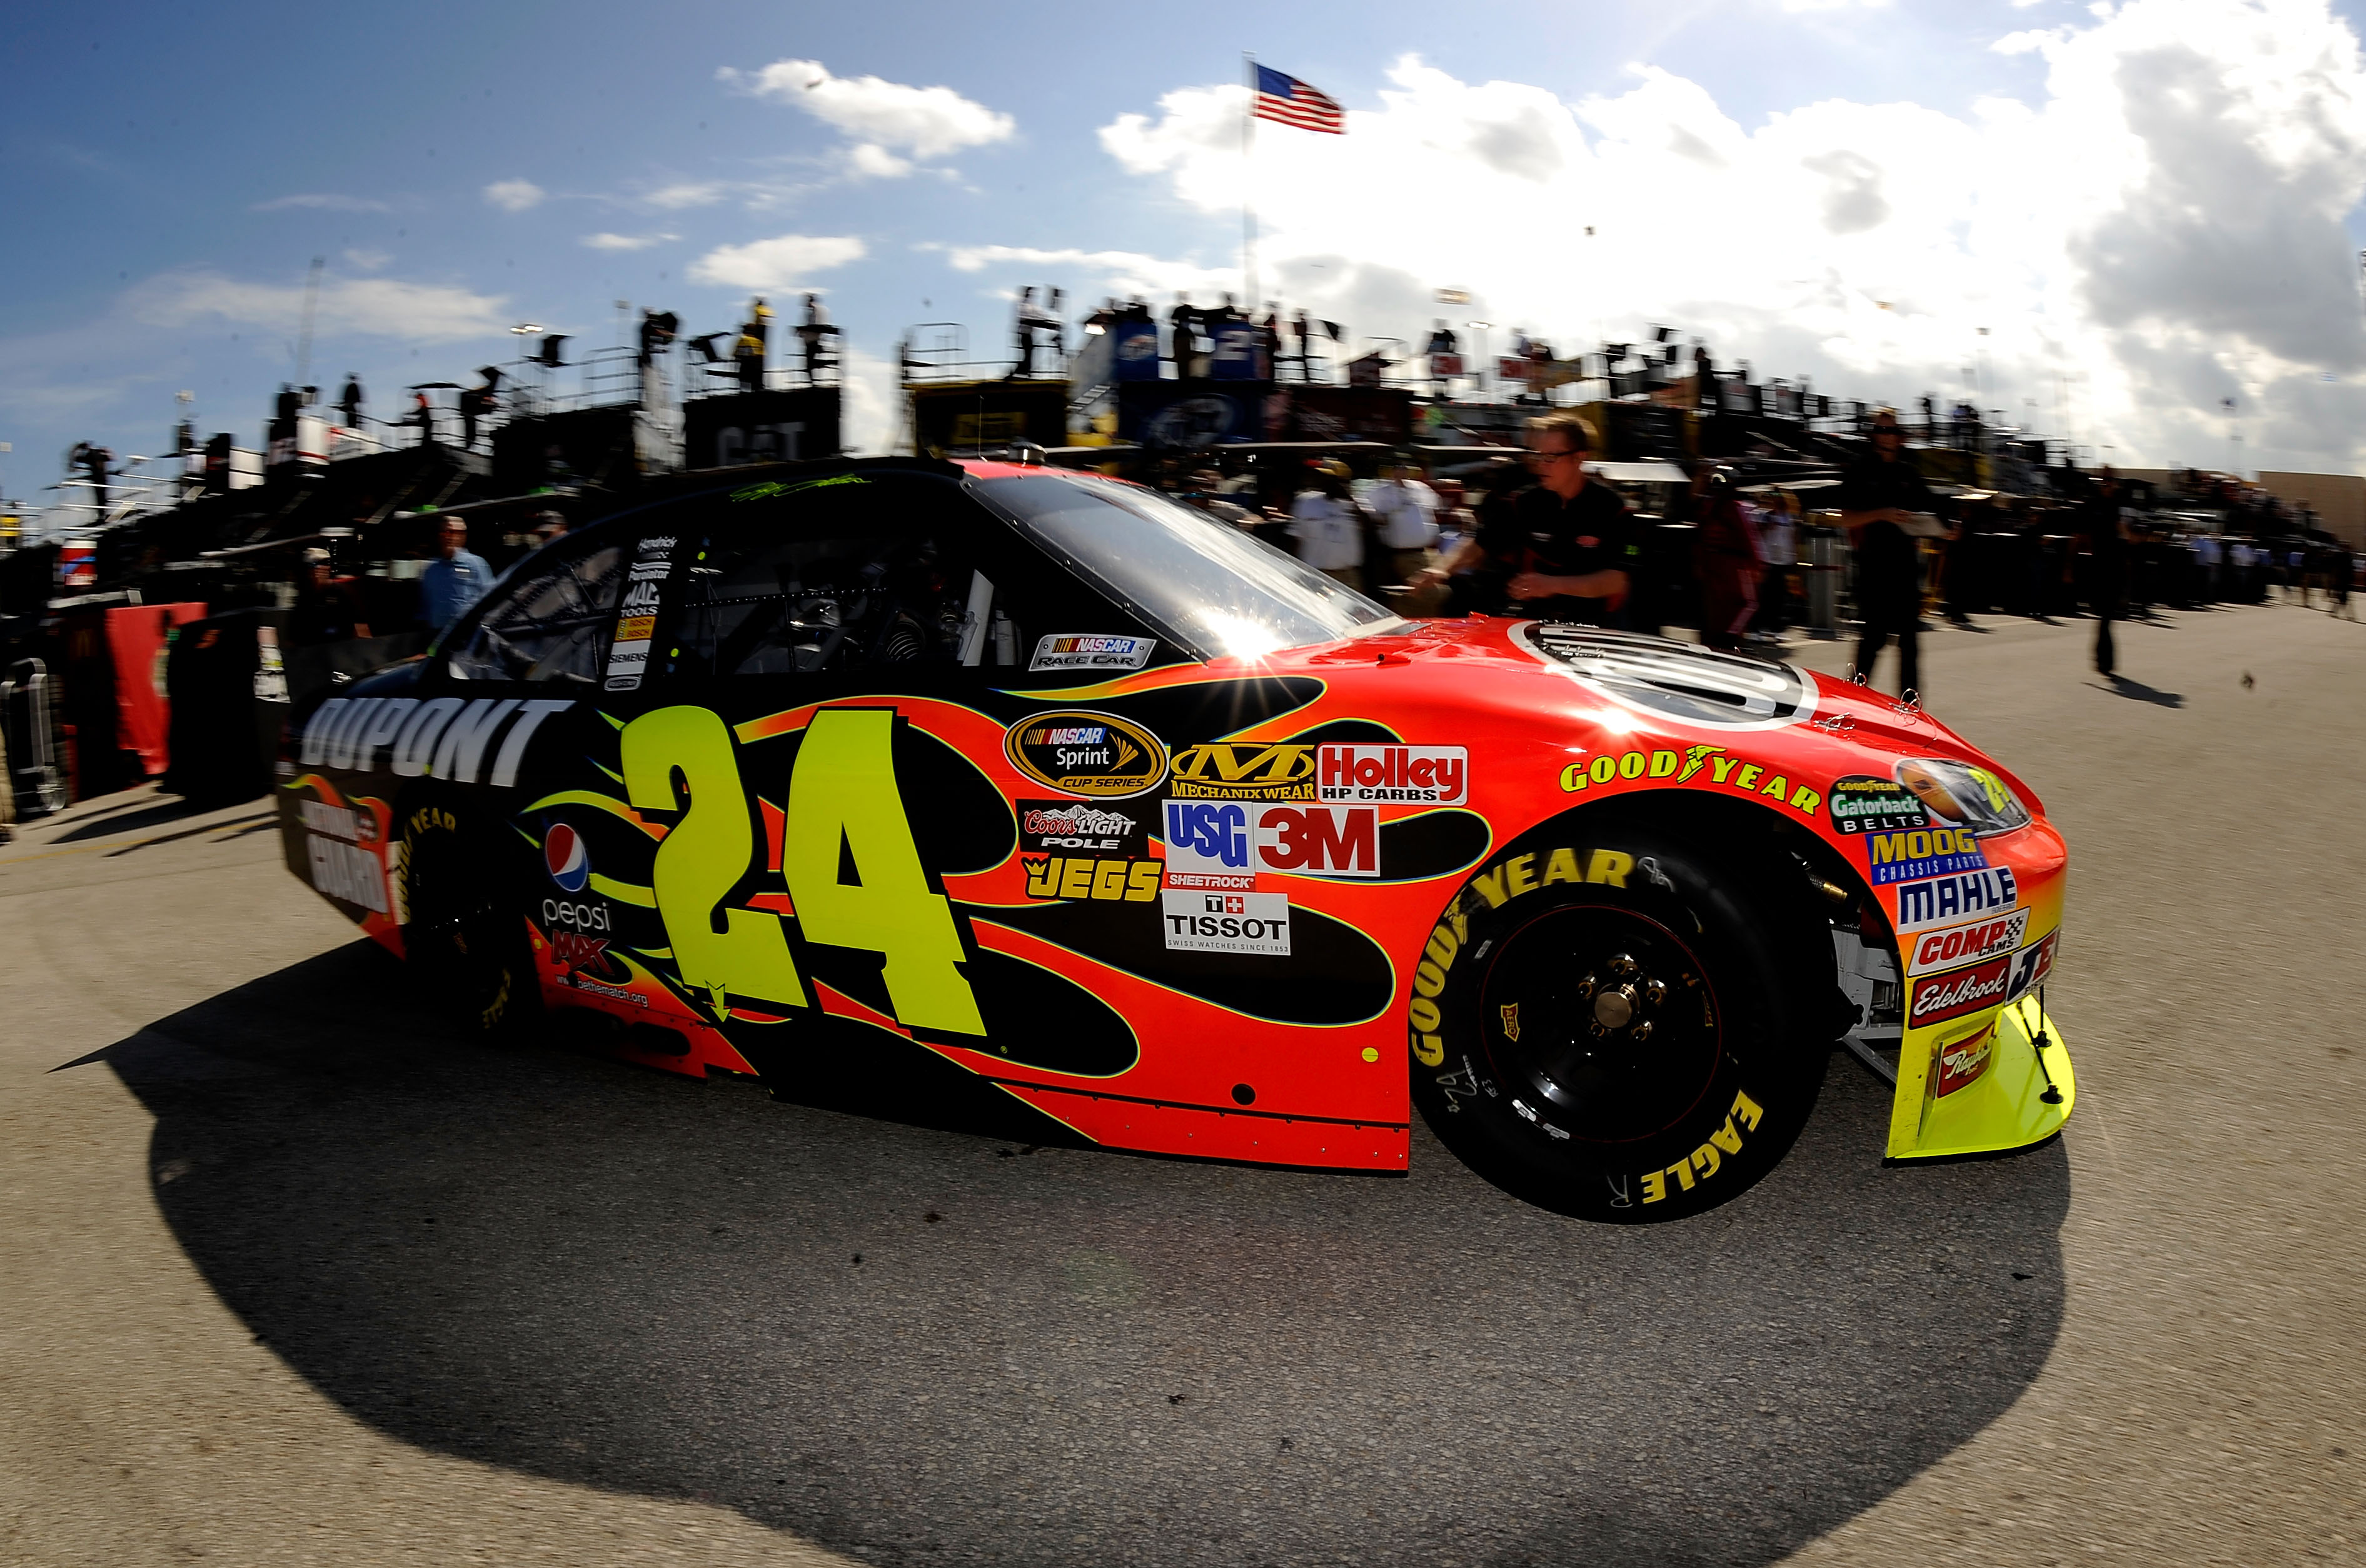 HOMESTEAD, FL - NOVEMBER 20:  Jeff Gordon drives the #24 DuPont Chevrolet through the garage area during practice for the NASCAR Sprint Cup Series Ford 400 at Homestead-Miami Speedway on November 20, 2010 in Homestead, Florida.  (Photo by Rusty Jarrett/Ge